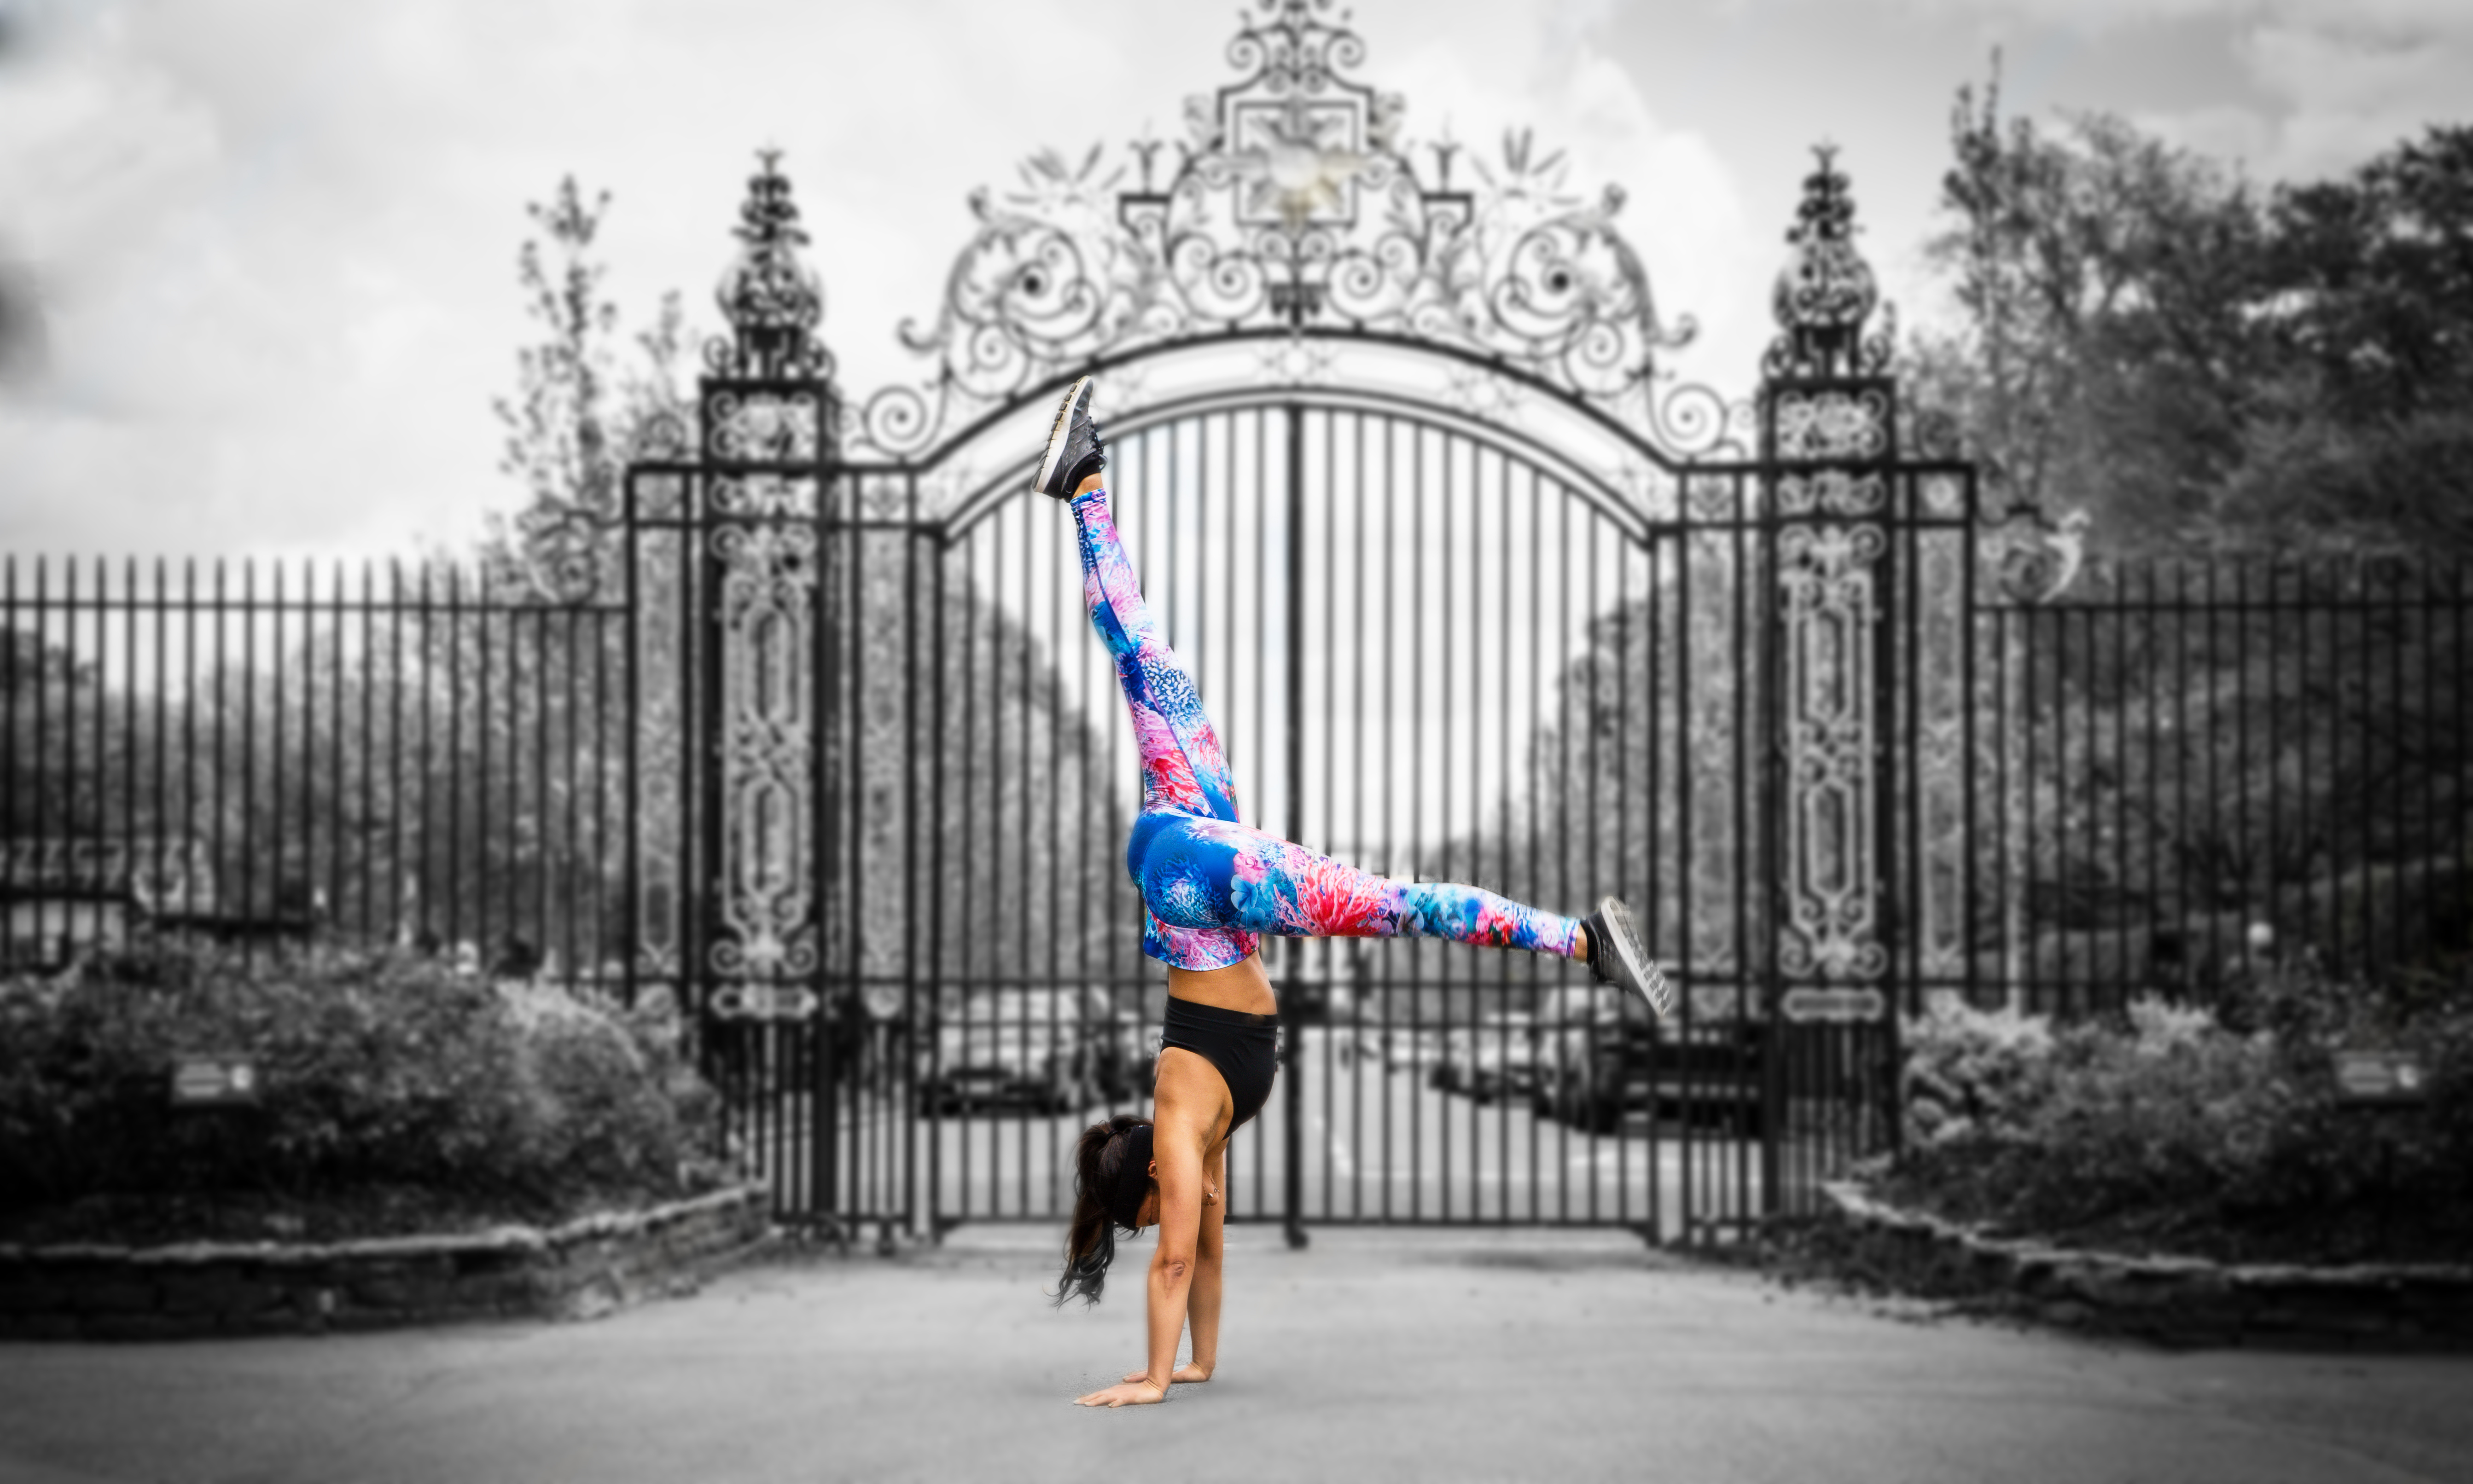 Headstand1 gate-1037